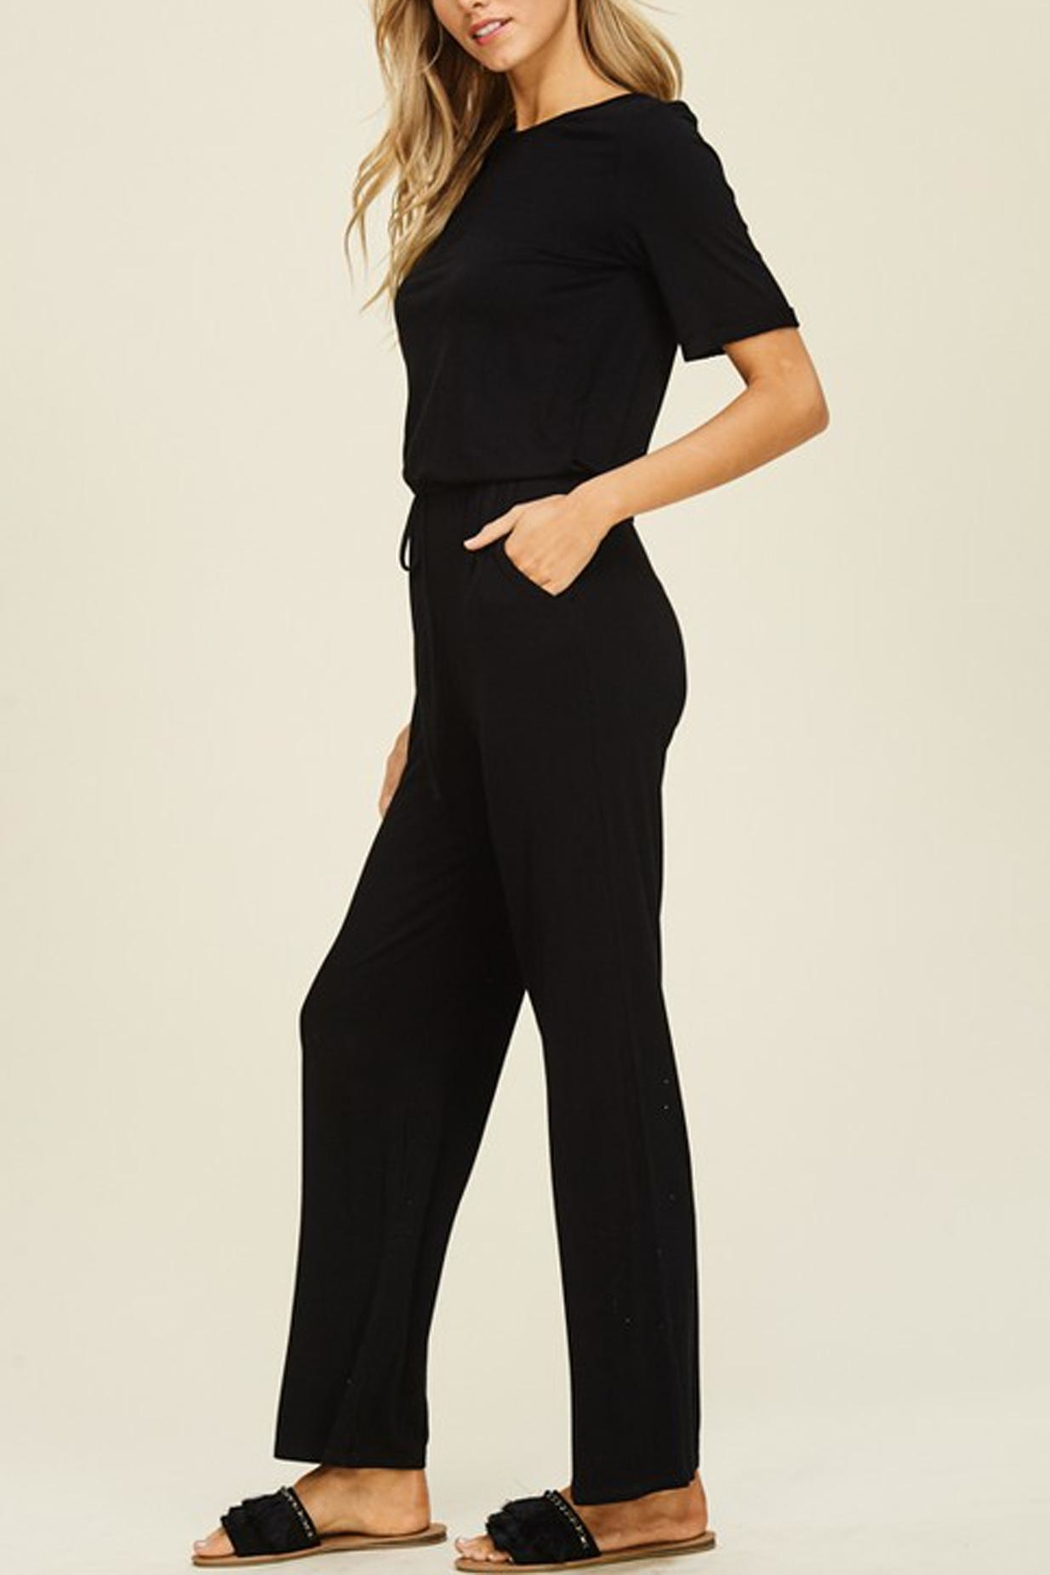 annabelle Black Knit Jumpsuit - Side Cropped Image